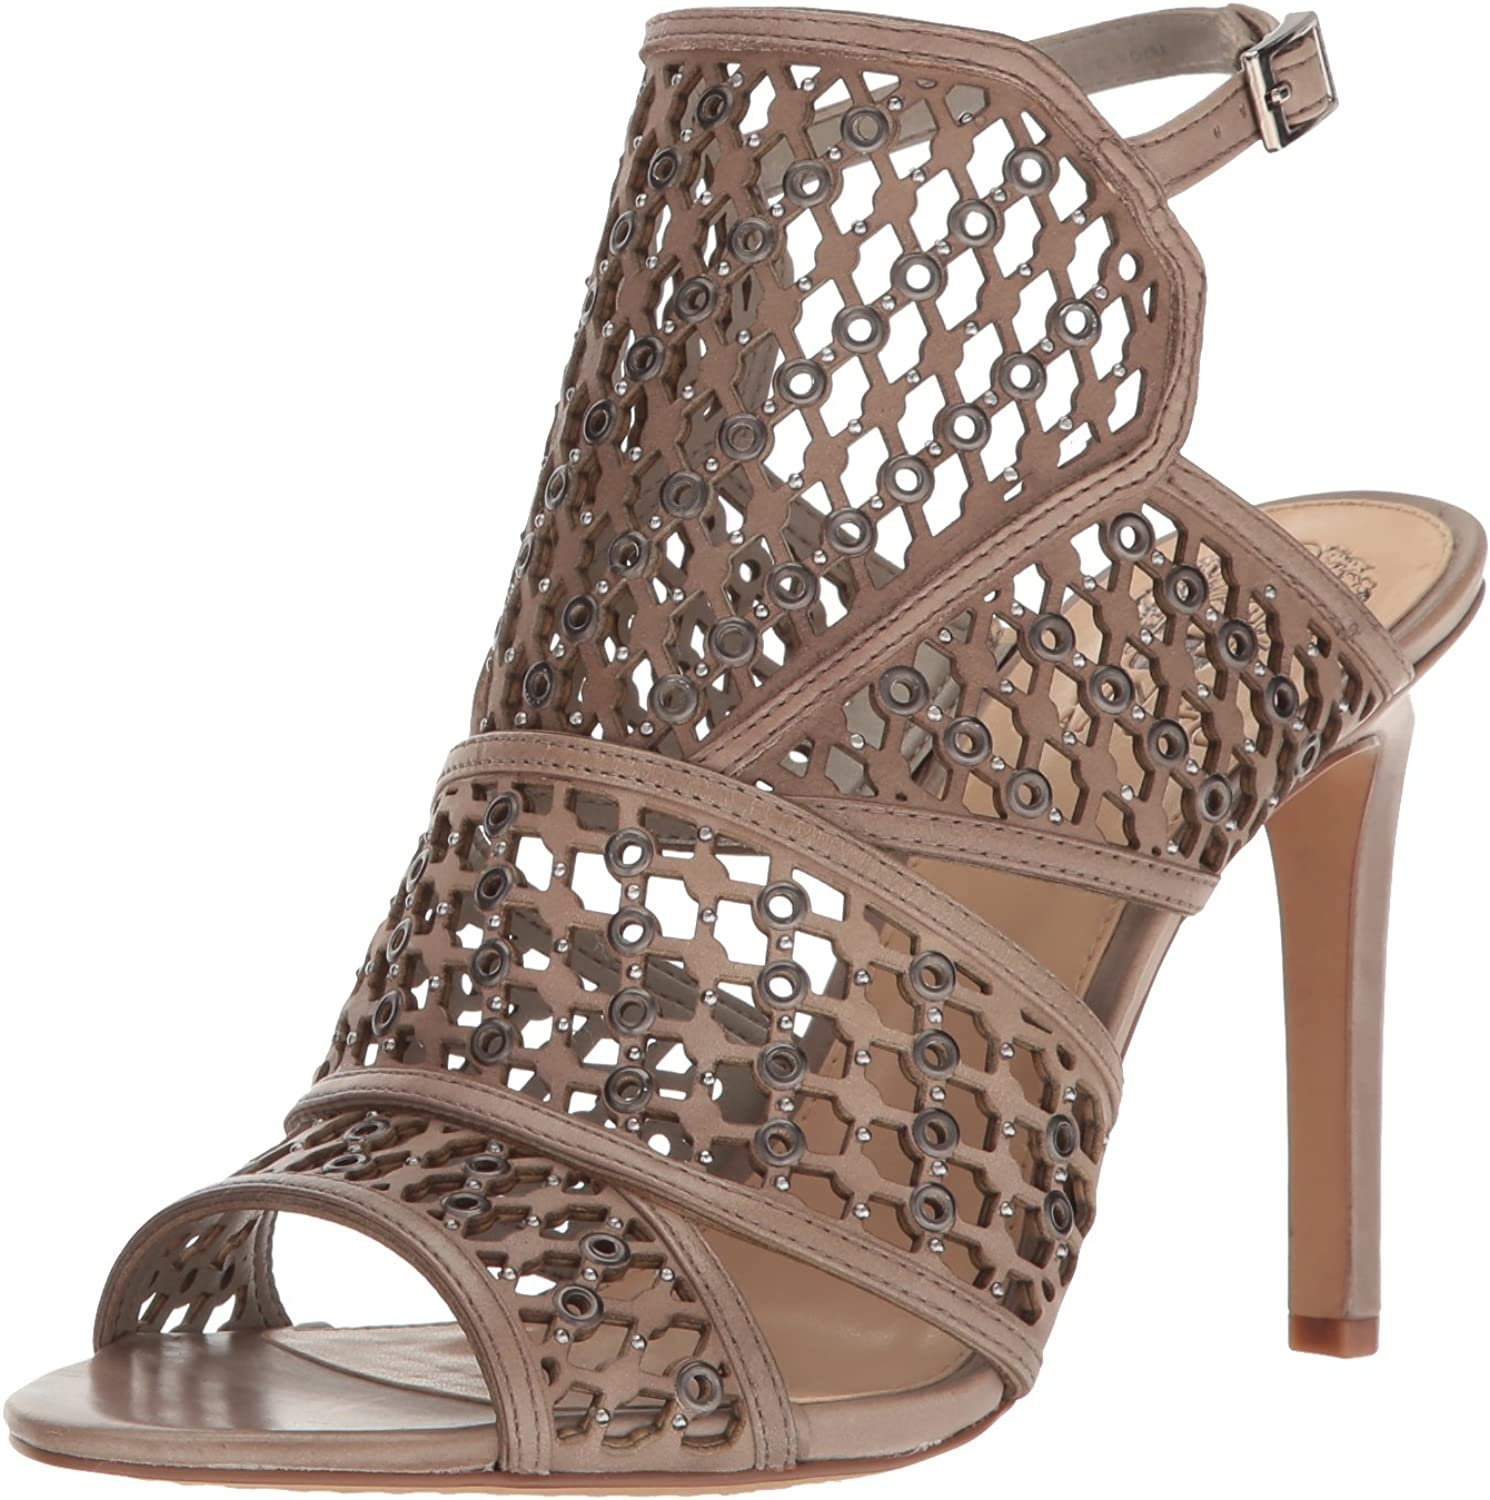 Vince Camuto Womens Korthina Dress Sandal